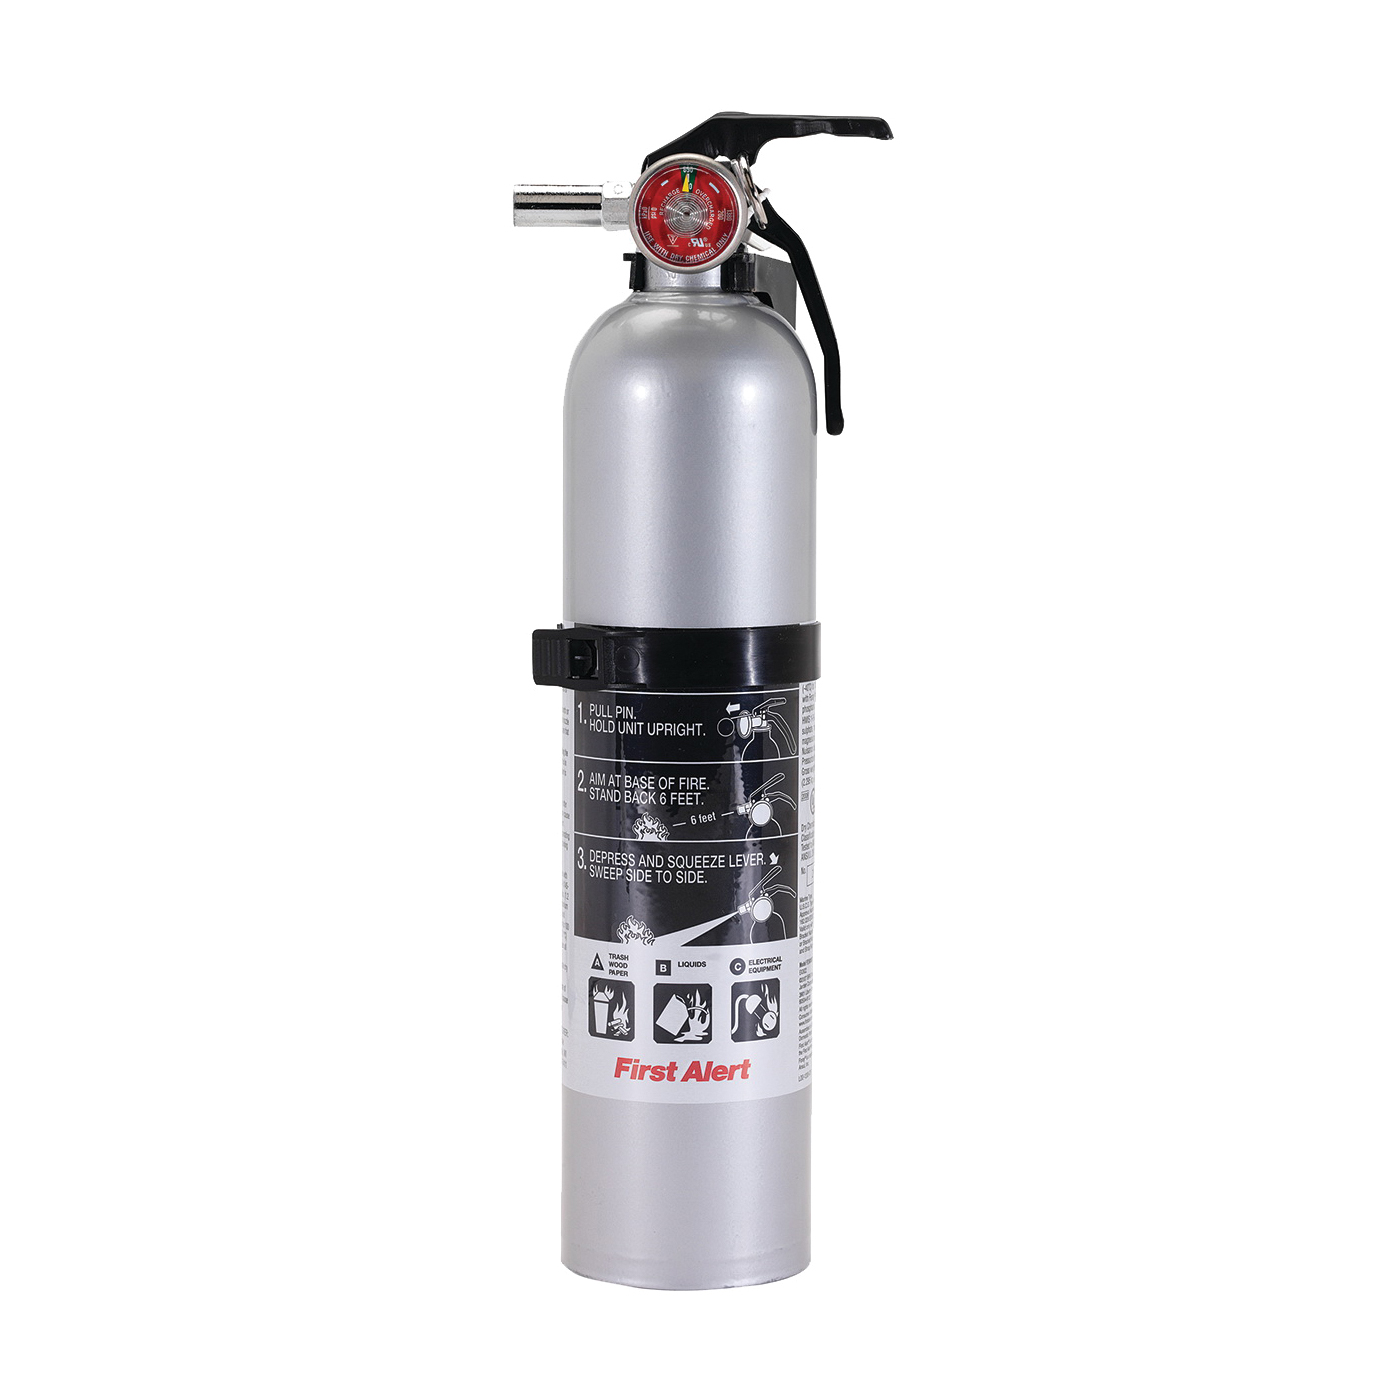 Picture of FIRST ALERT DHOME1 Rechargeable Fire Extinguisher, 2.4 lb Capacity, Monoammonium Phosphate, 1-A:10-B:C Class